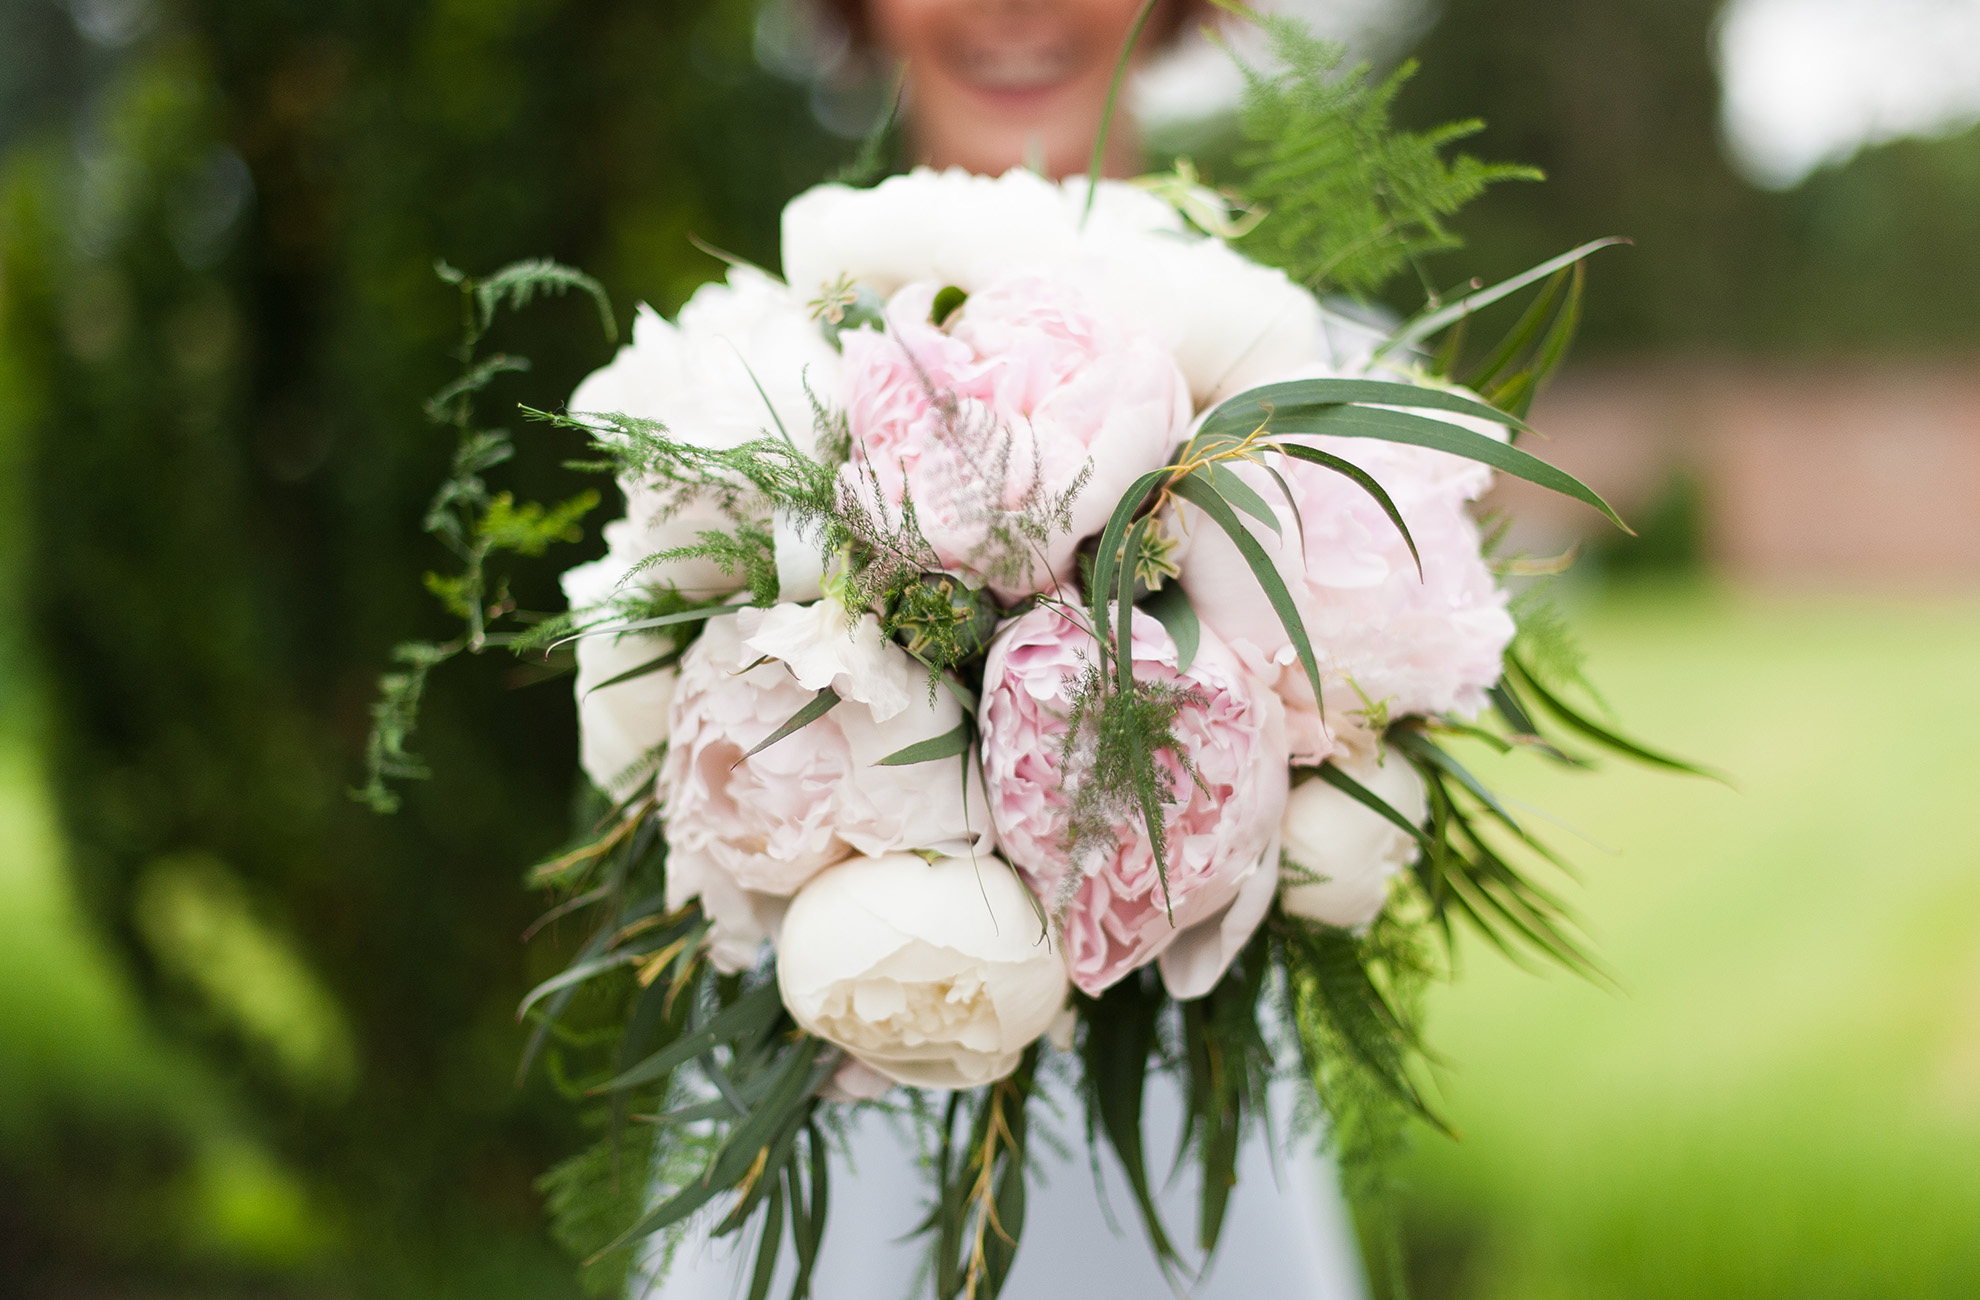 A bouquet of peonies smells amazing for a wedding at Combermere Abbey